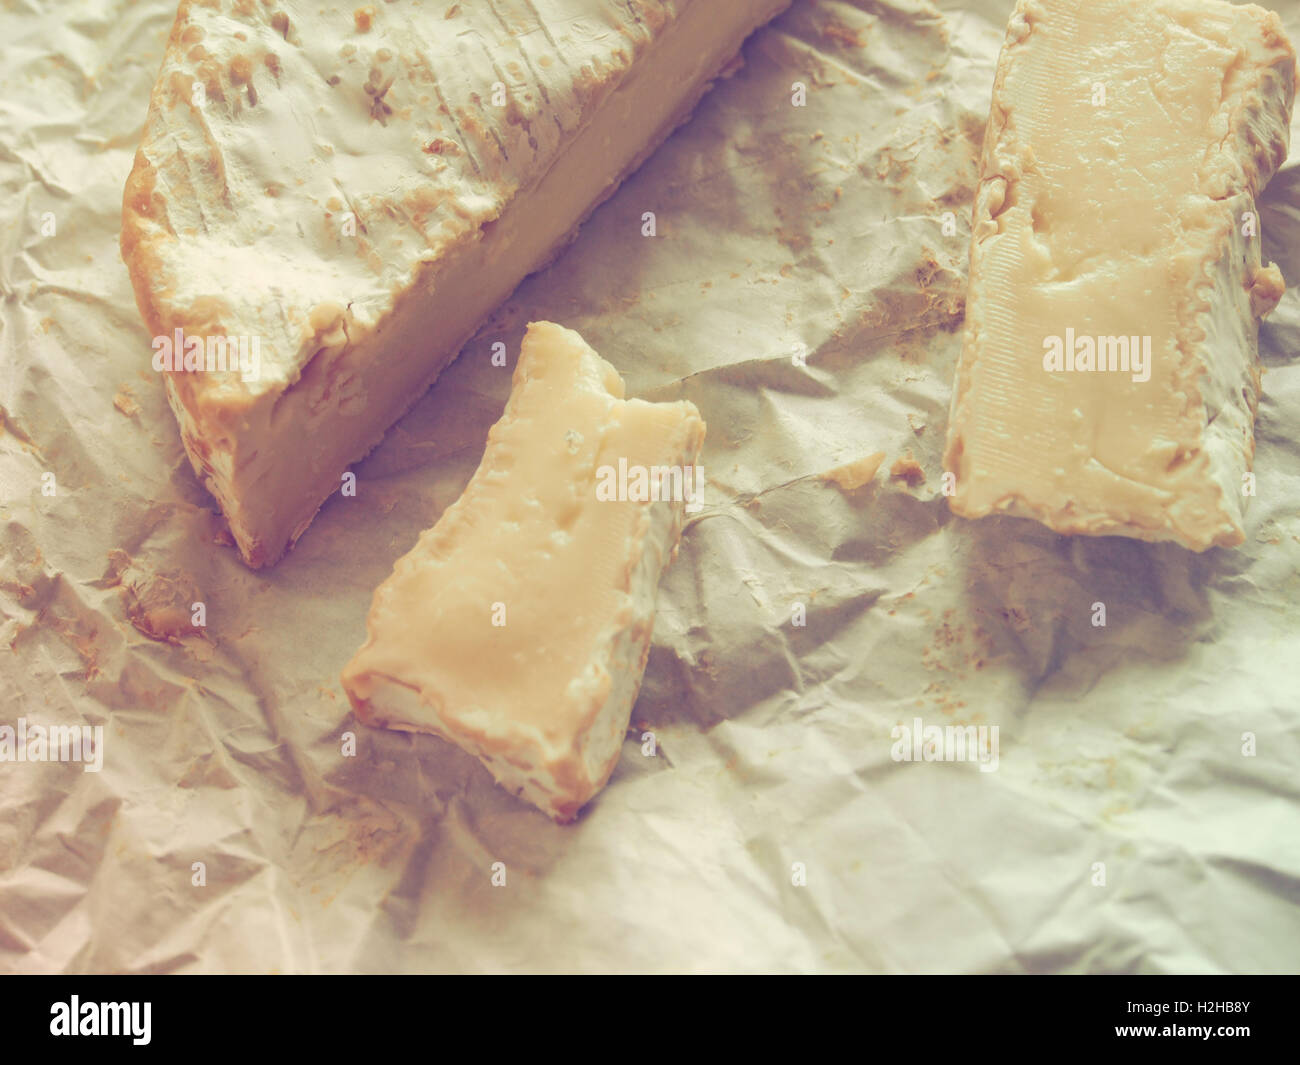 Camembert on crumpled wrapping paper. Grunge style. - Stock Image